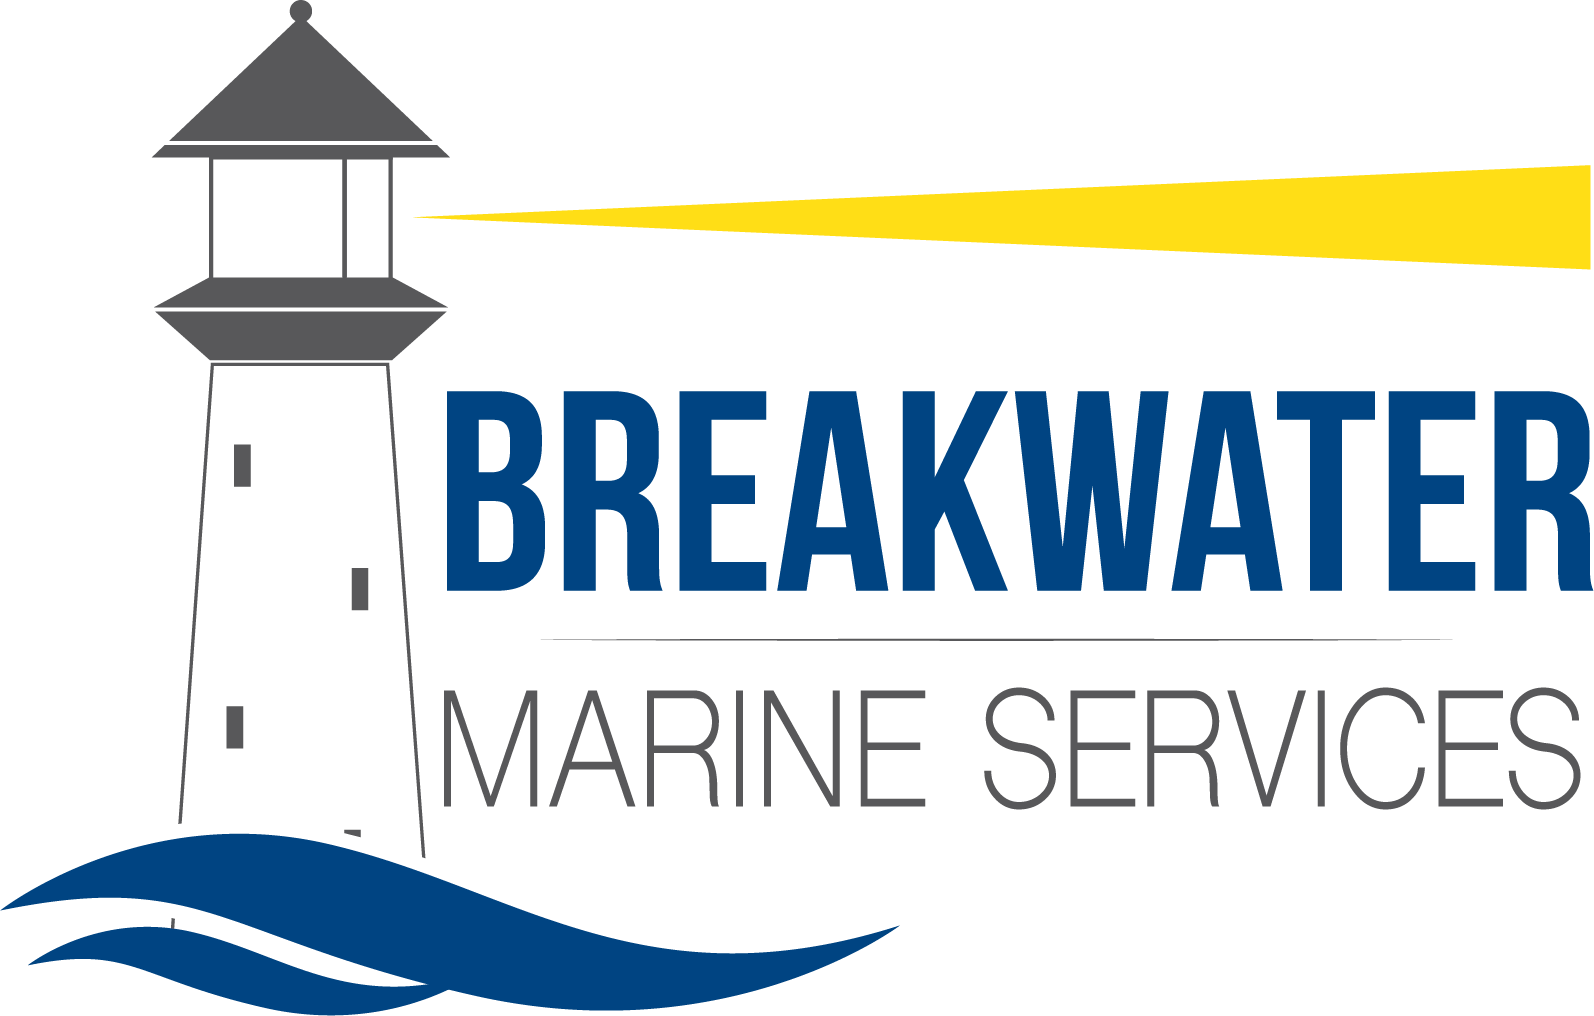 BreakwaterMarineServices_Logo_FINAL1.png